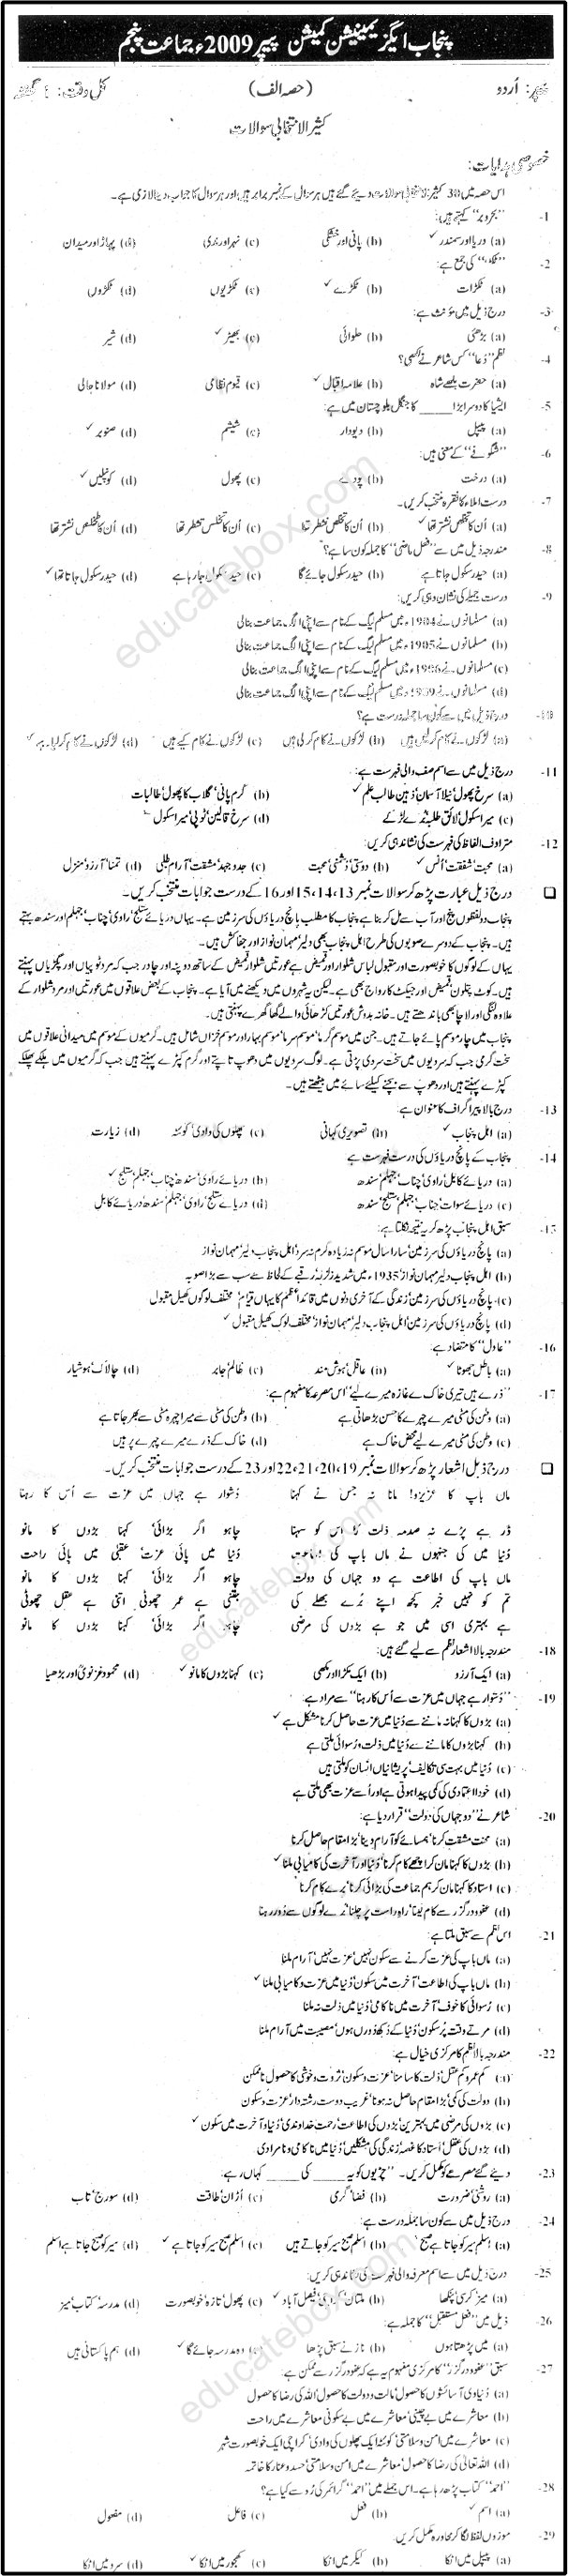 Past Paper - Class 5 Urdu Punjab Education Commission 2009 Solved Paper - Objective Type